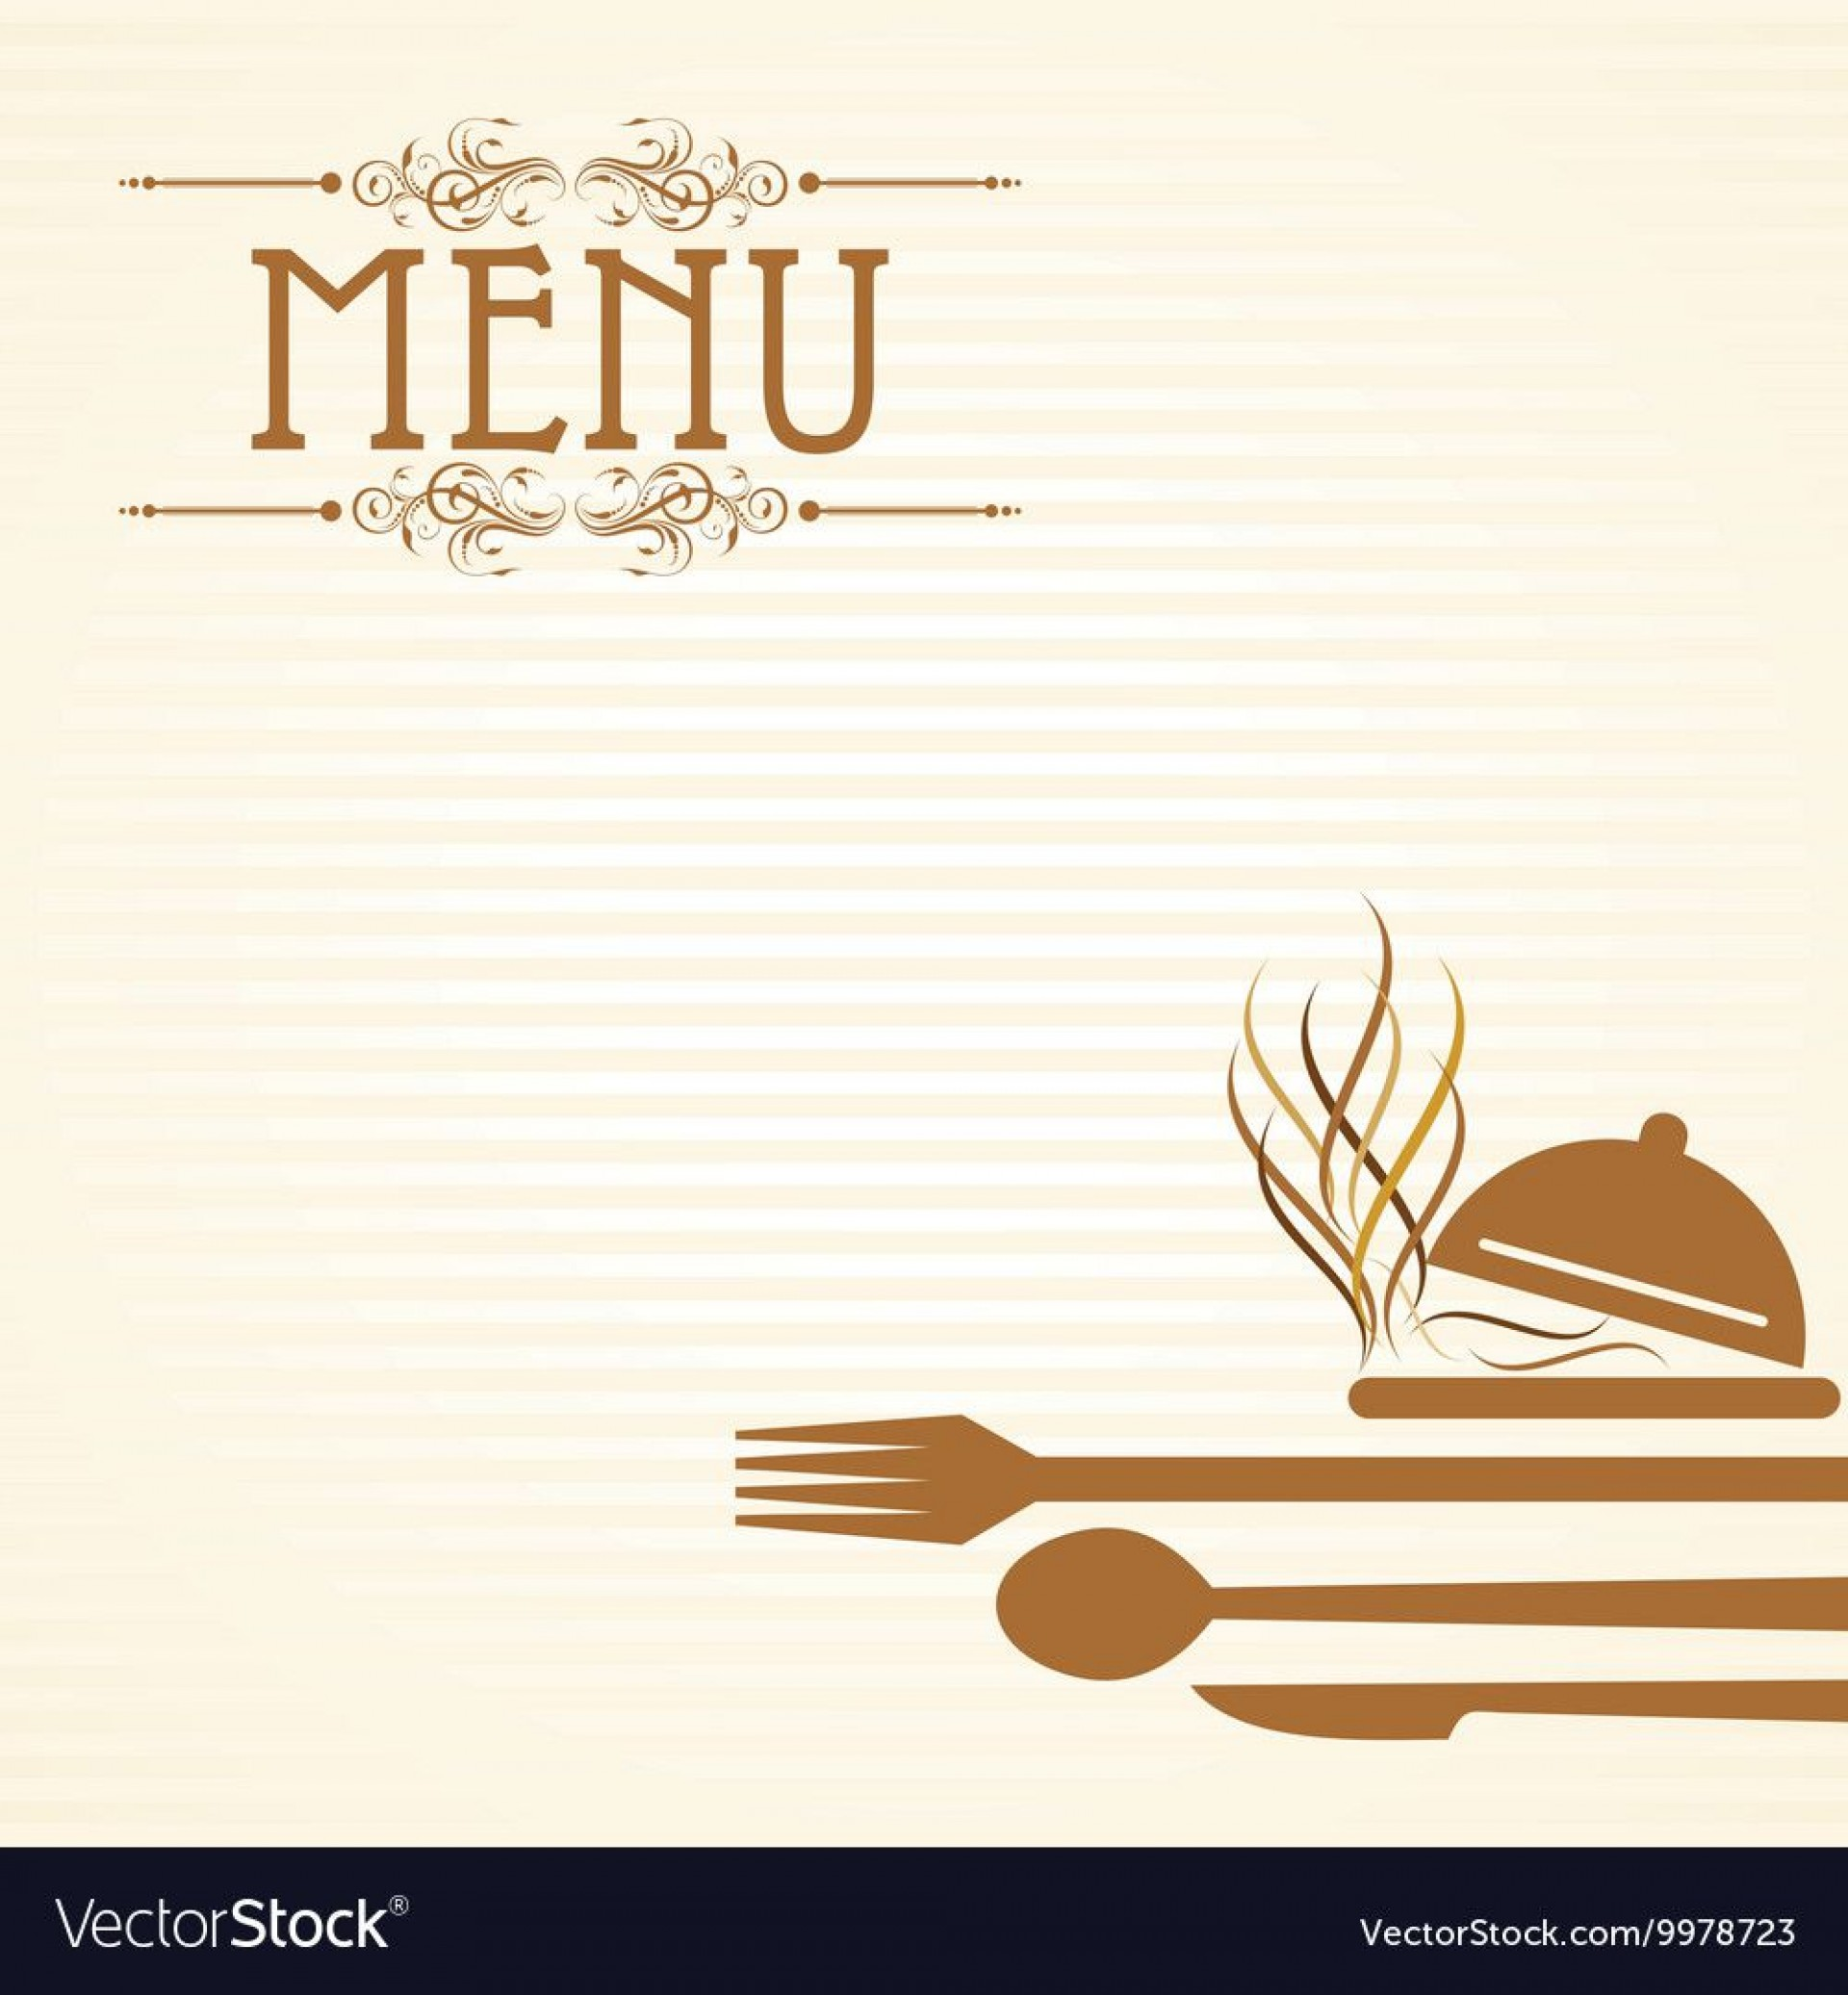 008 Outstanding Menu Card Template Free Download Highest Clarity  Indian Restaurant Design Cafe1920